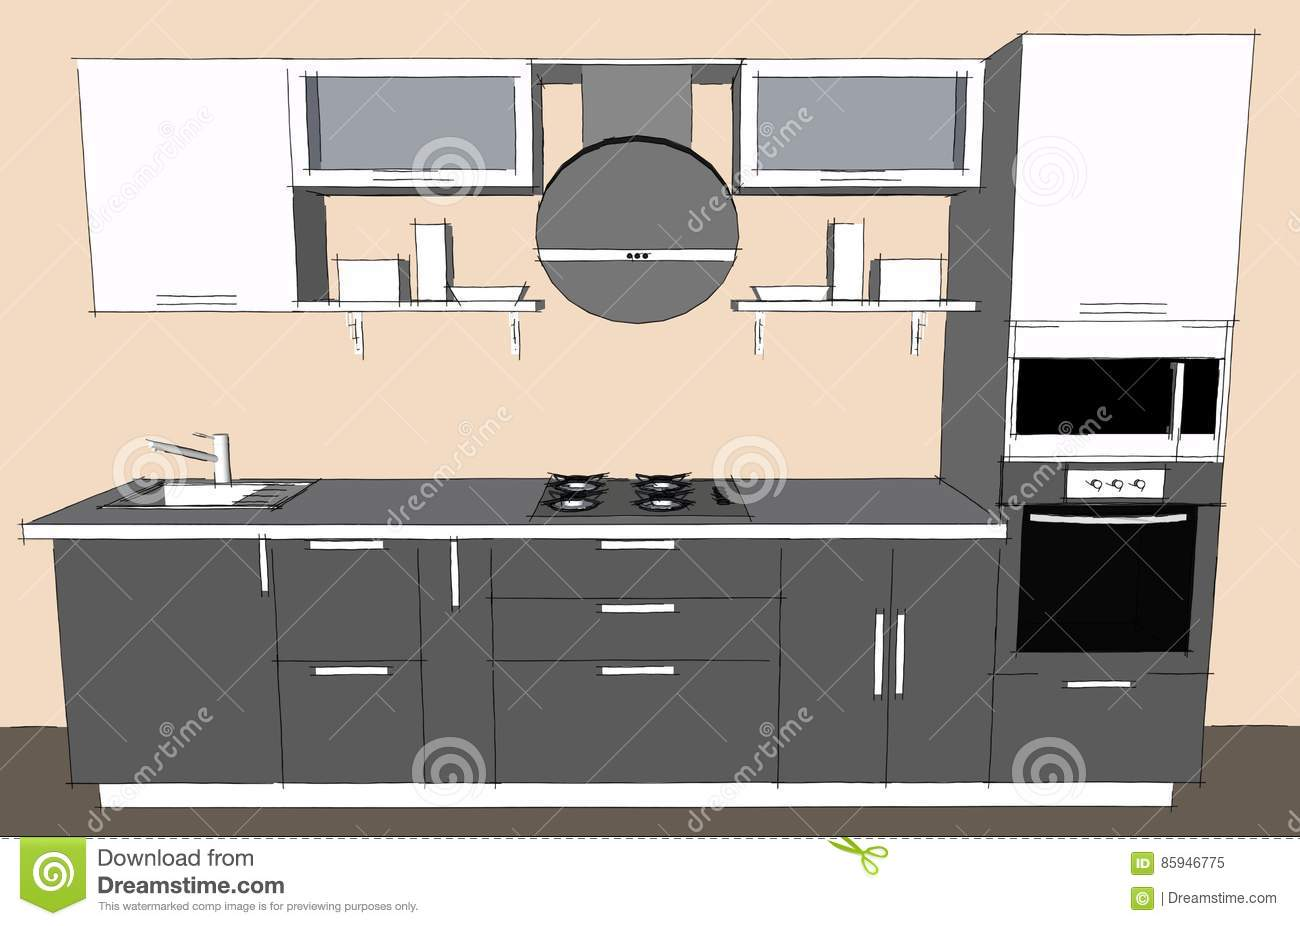 sketch drawing of 3d grey modern kitchen interior with round hood sketch drawing of 3d grey modern kitchen interior with round hood and glass doors of cupboards